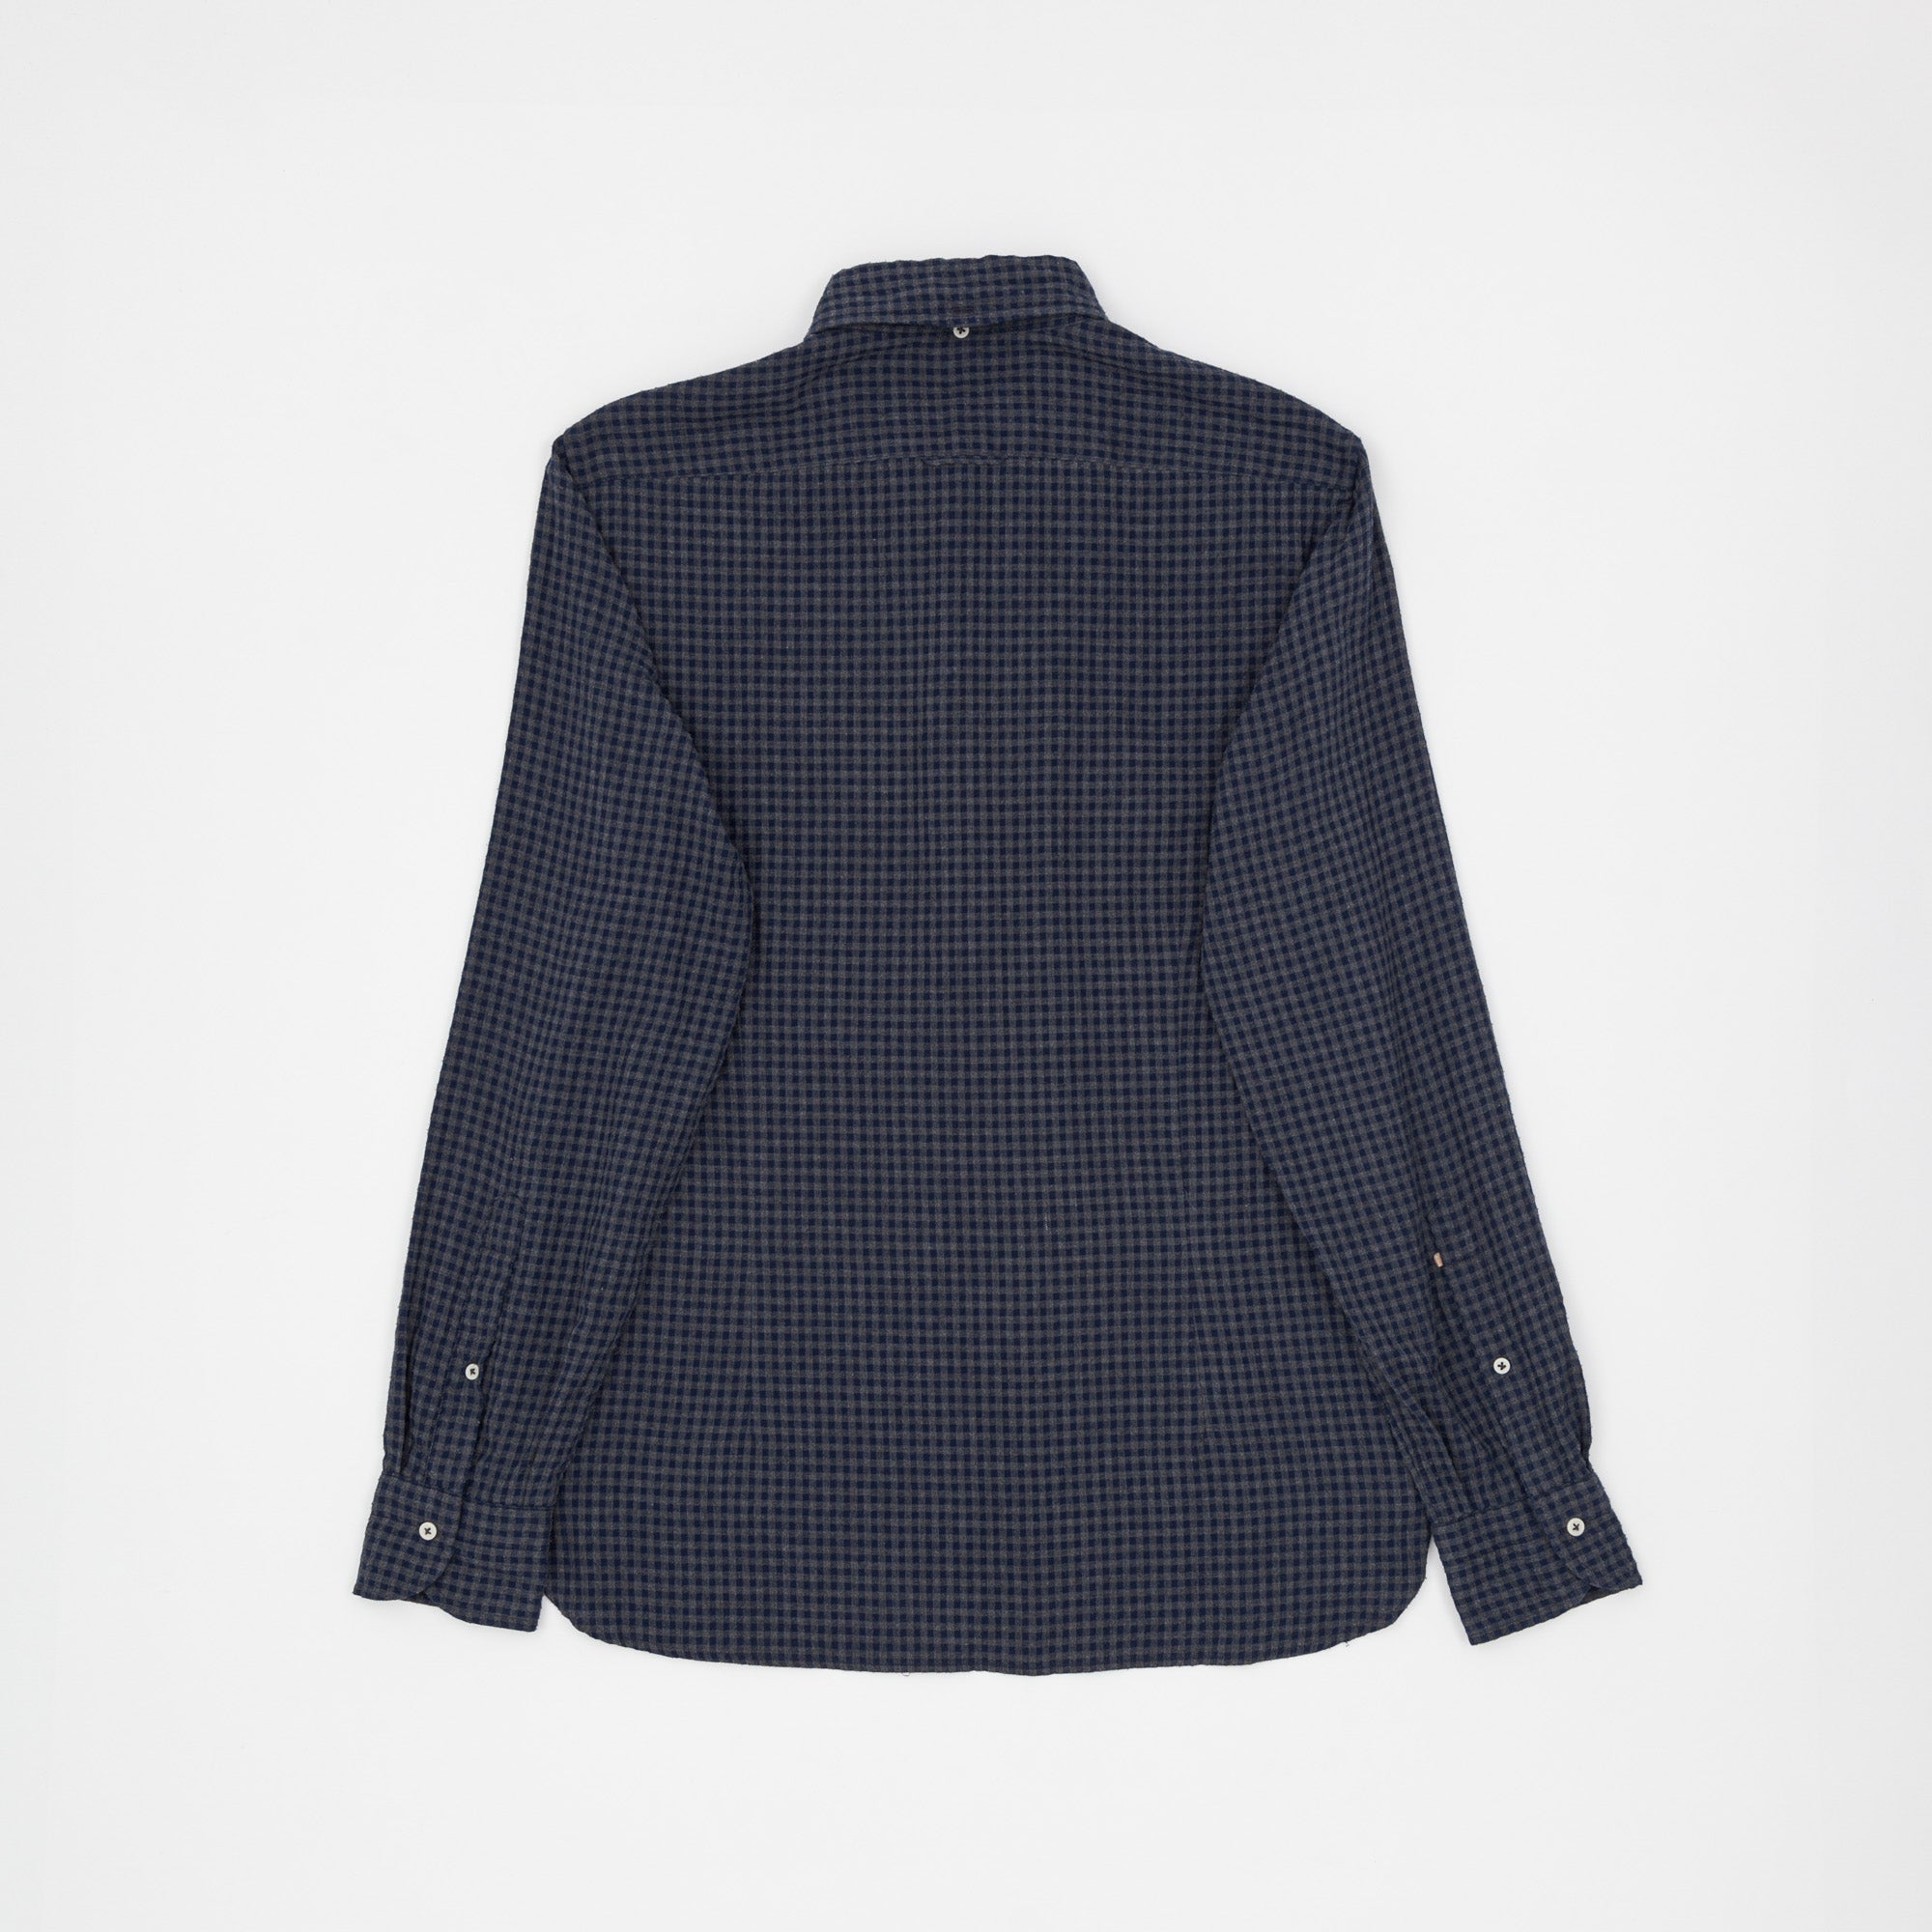 A.B.C.L Gingham Checked Shirt